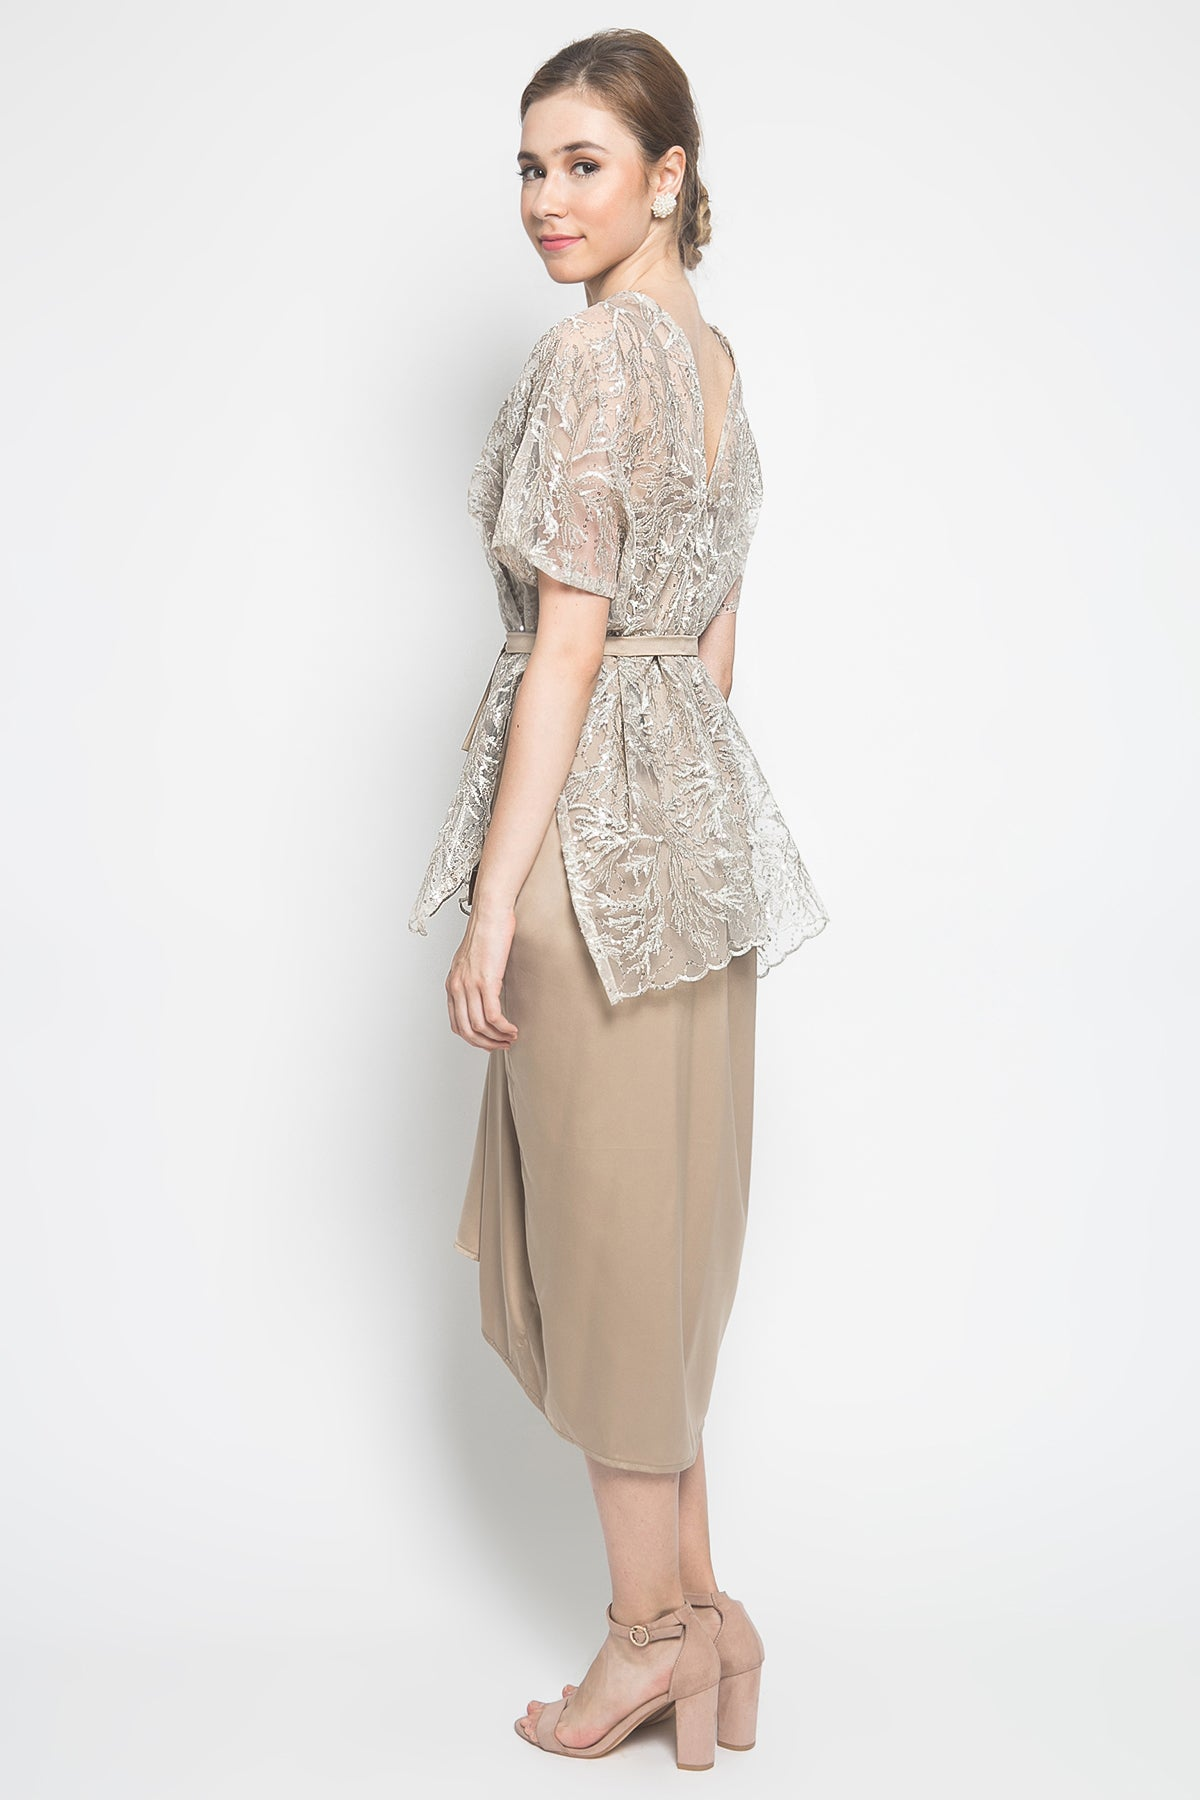 Nuna Salma Dress in Gold